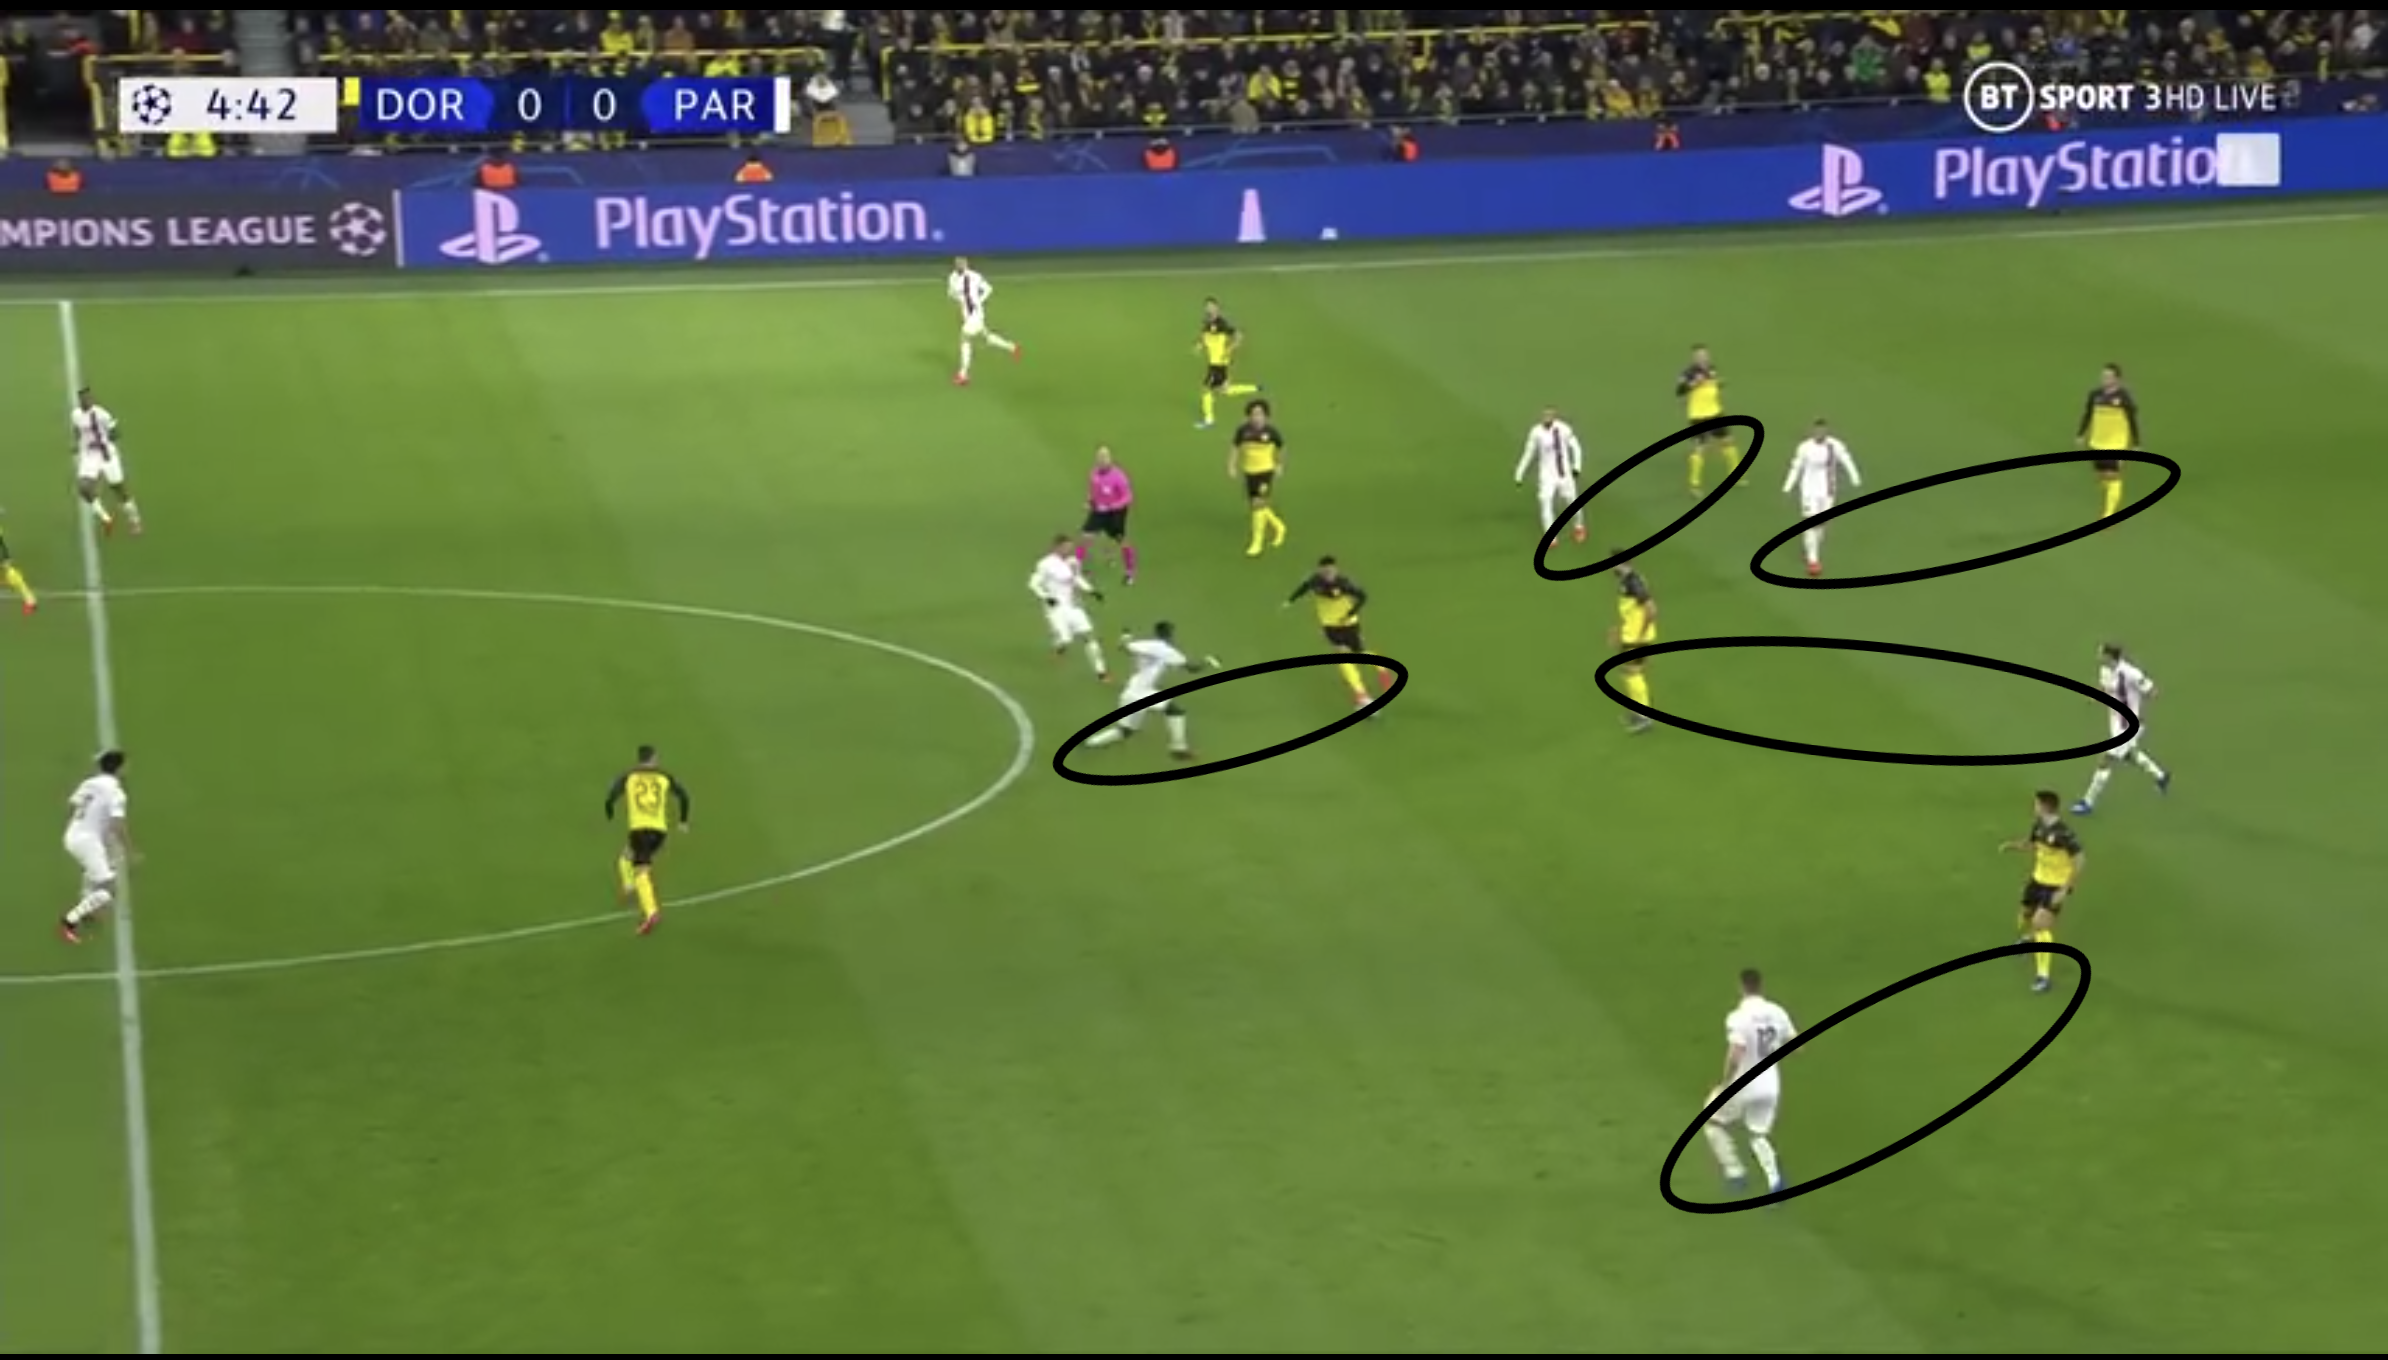 Champions League 2019-2020: Borussia Dortmund vs Paris Saint German-tactical analysis tactics